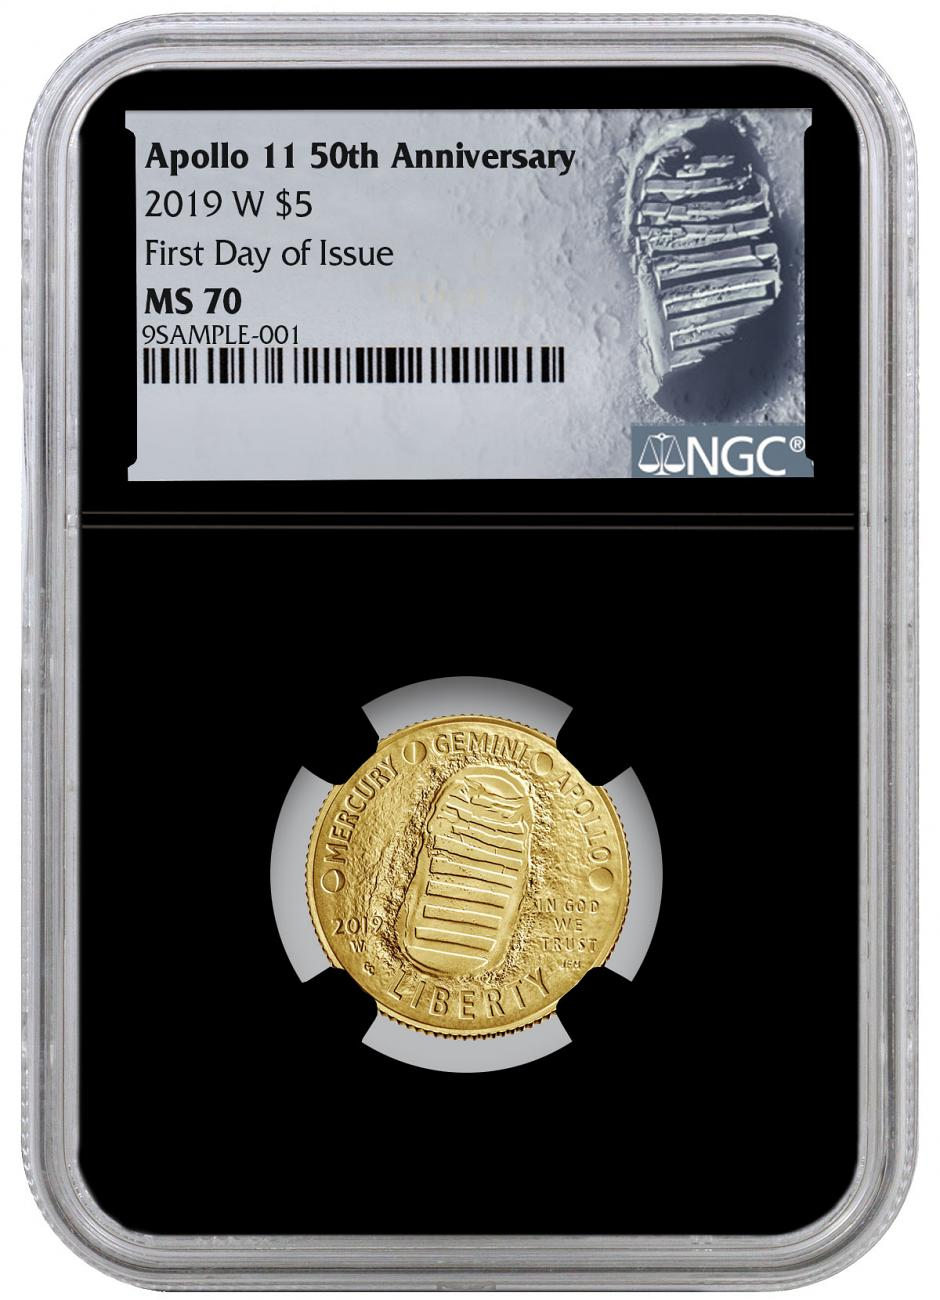 2019-W US Apollo 11 50th Anniversary $5 Gold Commemorative Coin NGC MS70 FDI Black Core Holder Moon Label